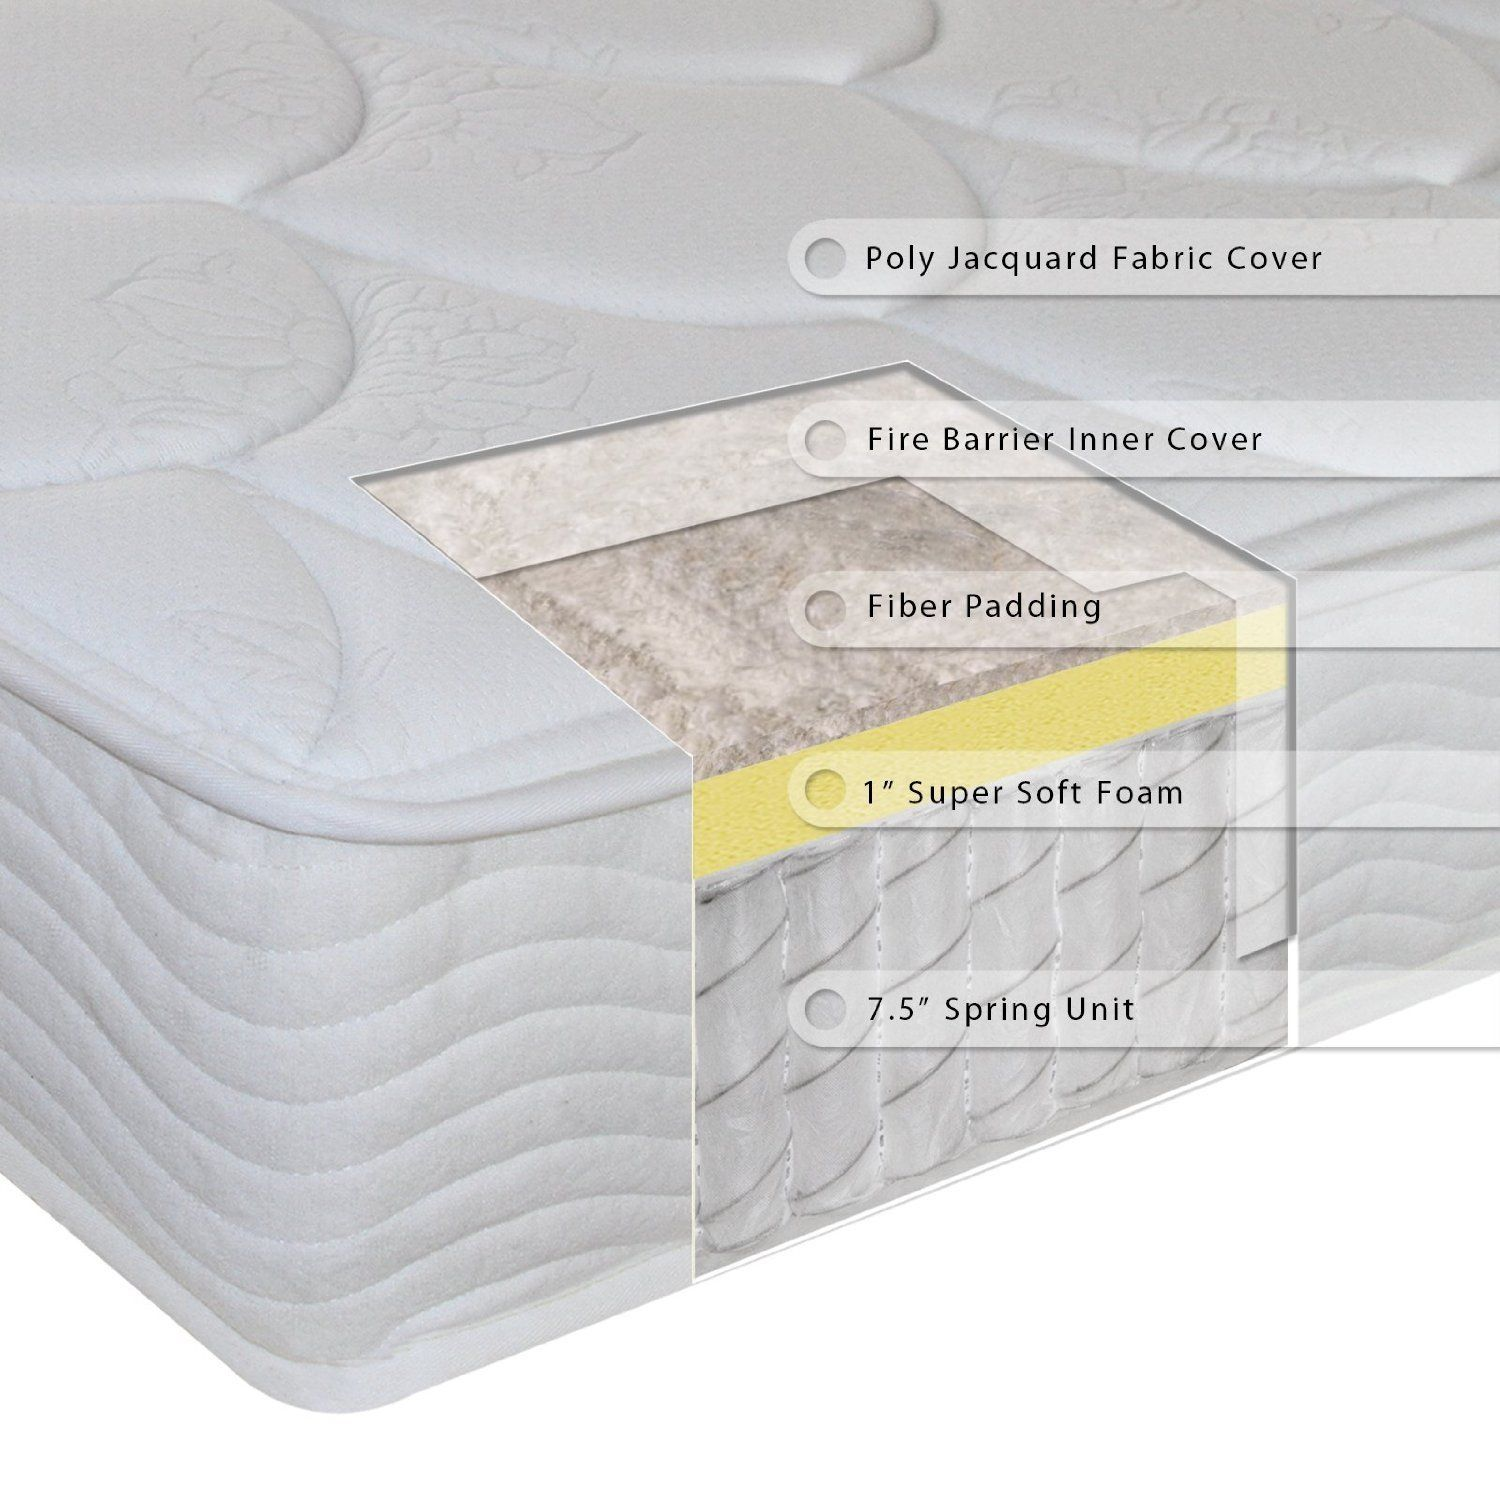 This Full Size 8 Inch Thick Innerspring Coil Mattress Is Made Of